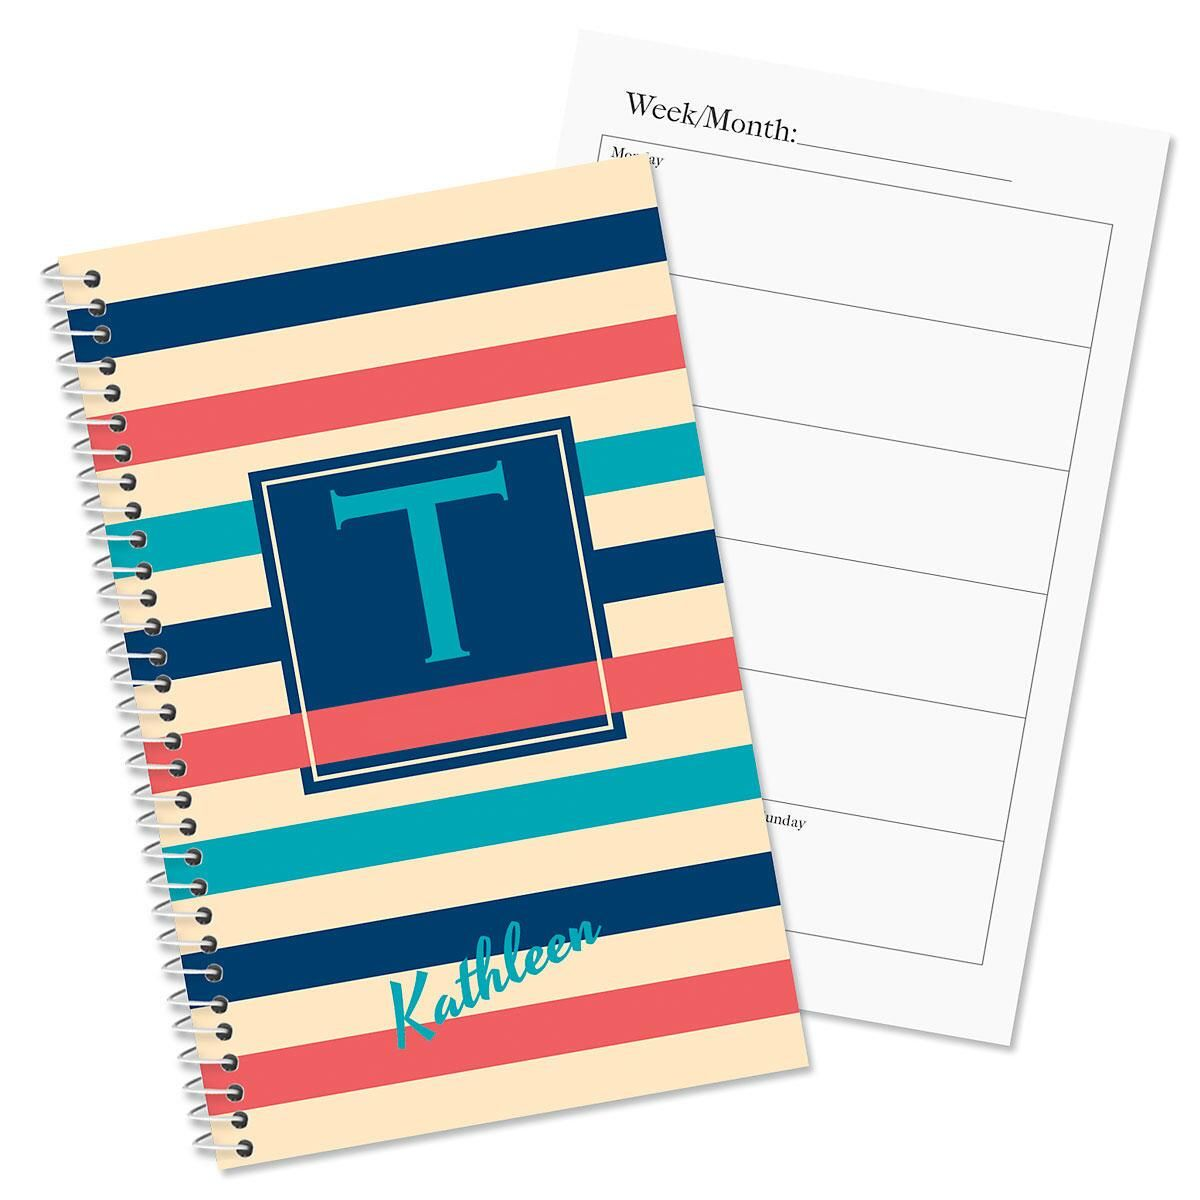 Brilliant bands personalized planner colorful images for Custom photo planner